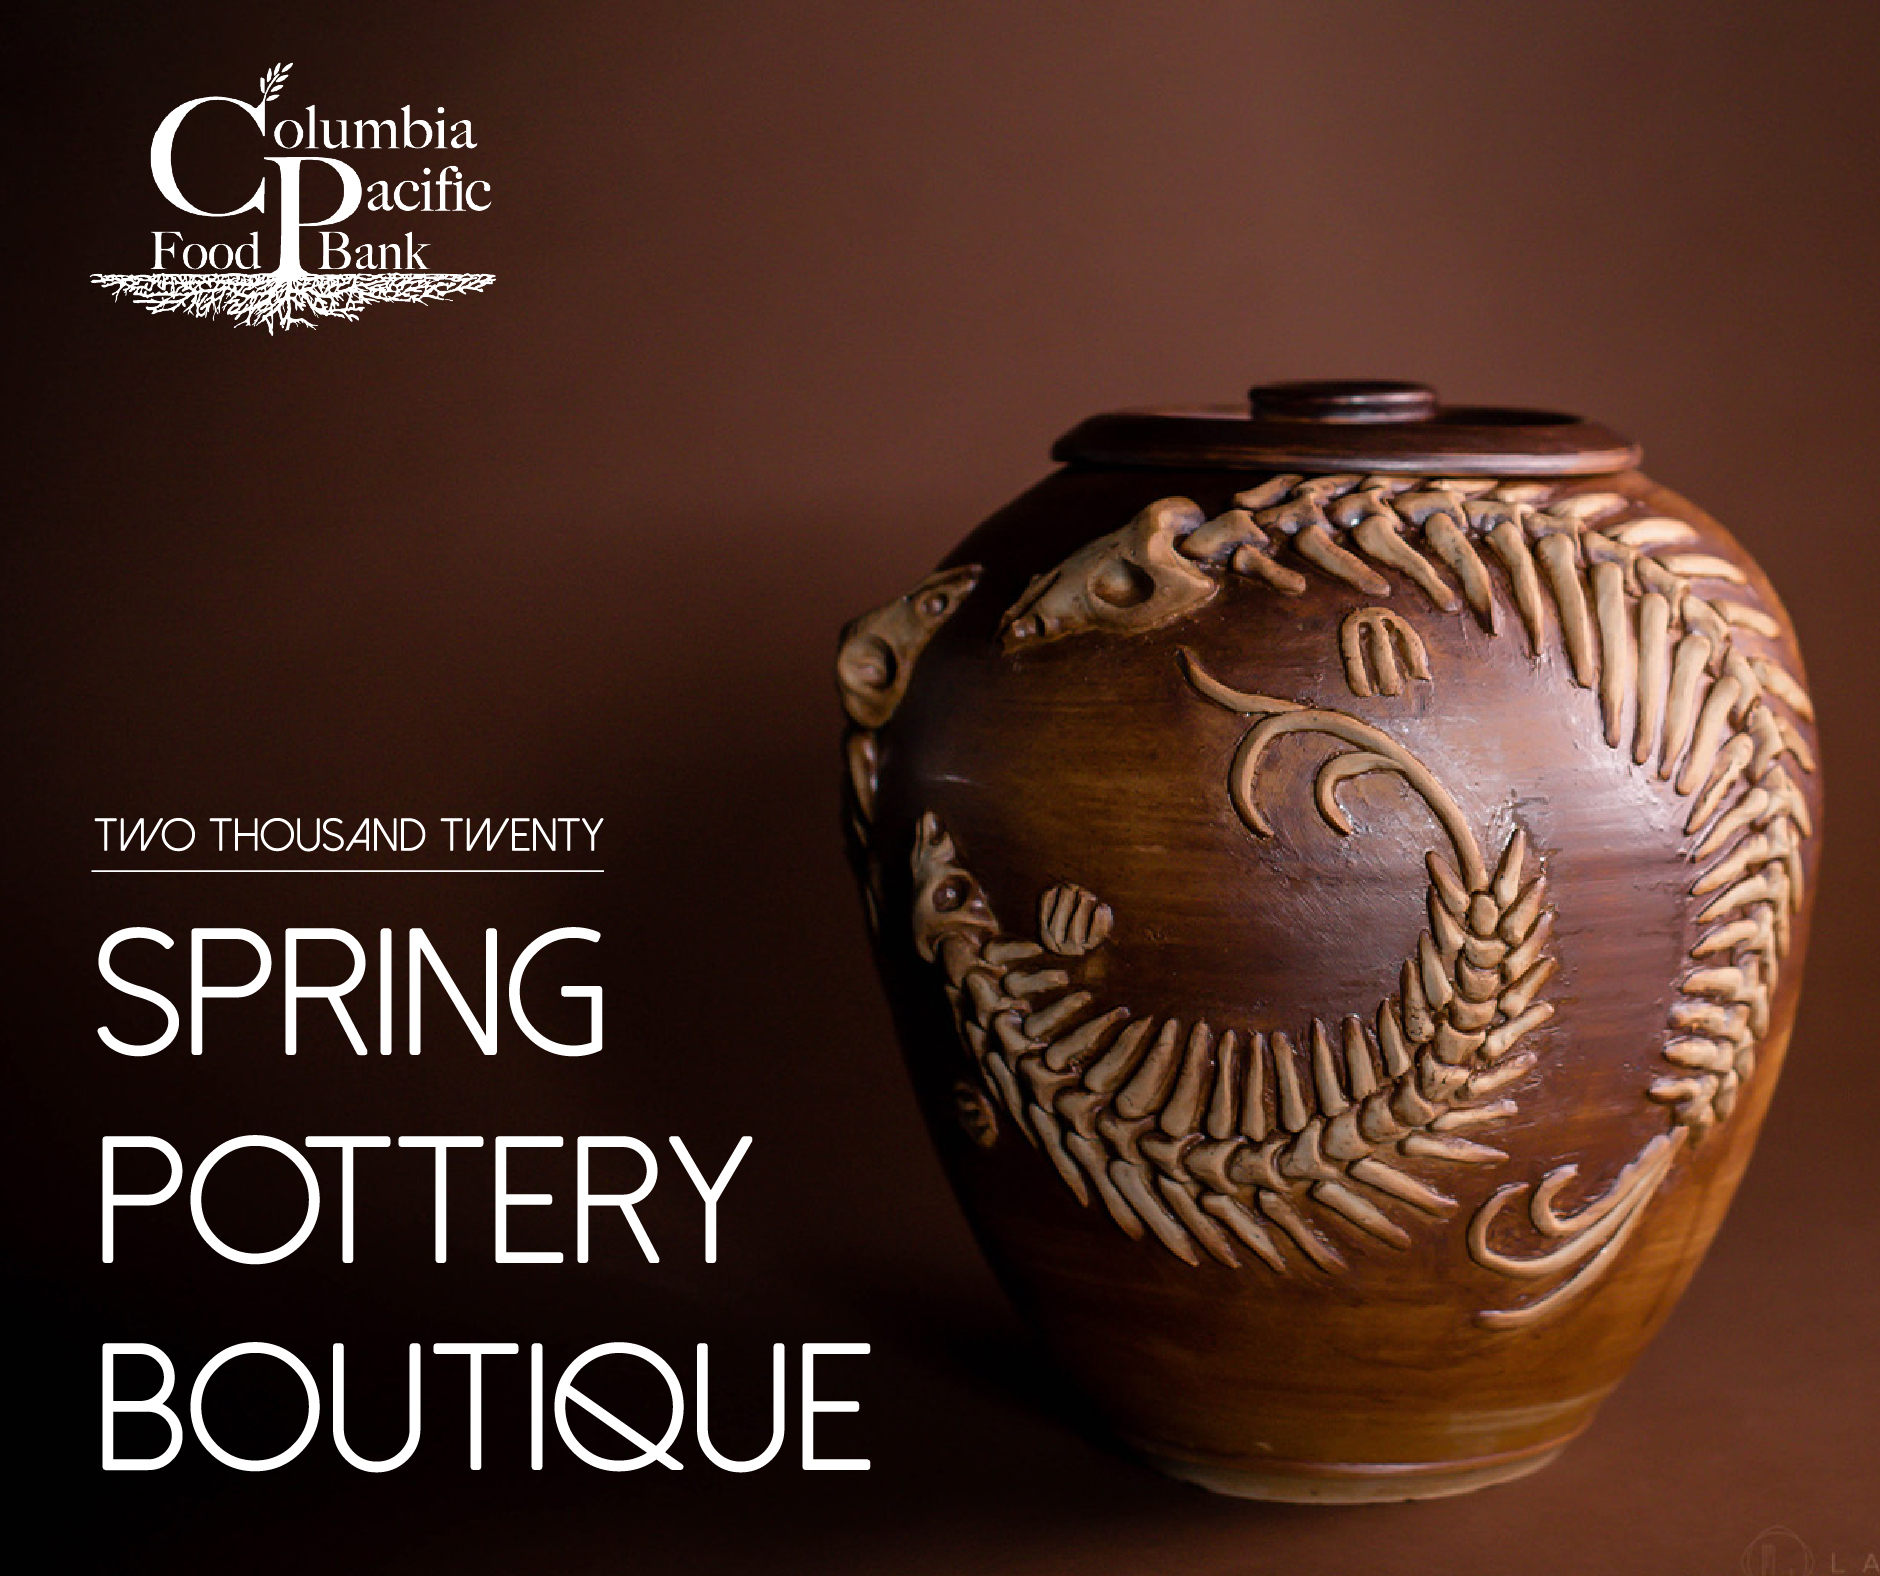 spring pottery boutique 2020